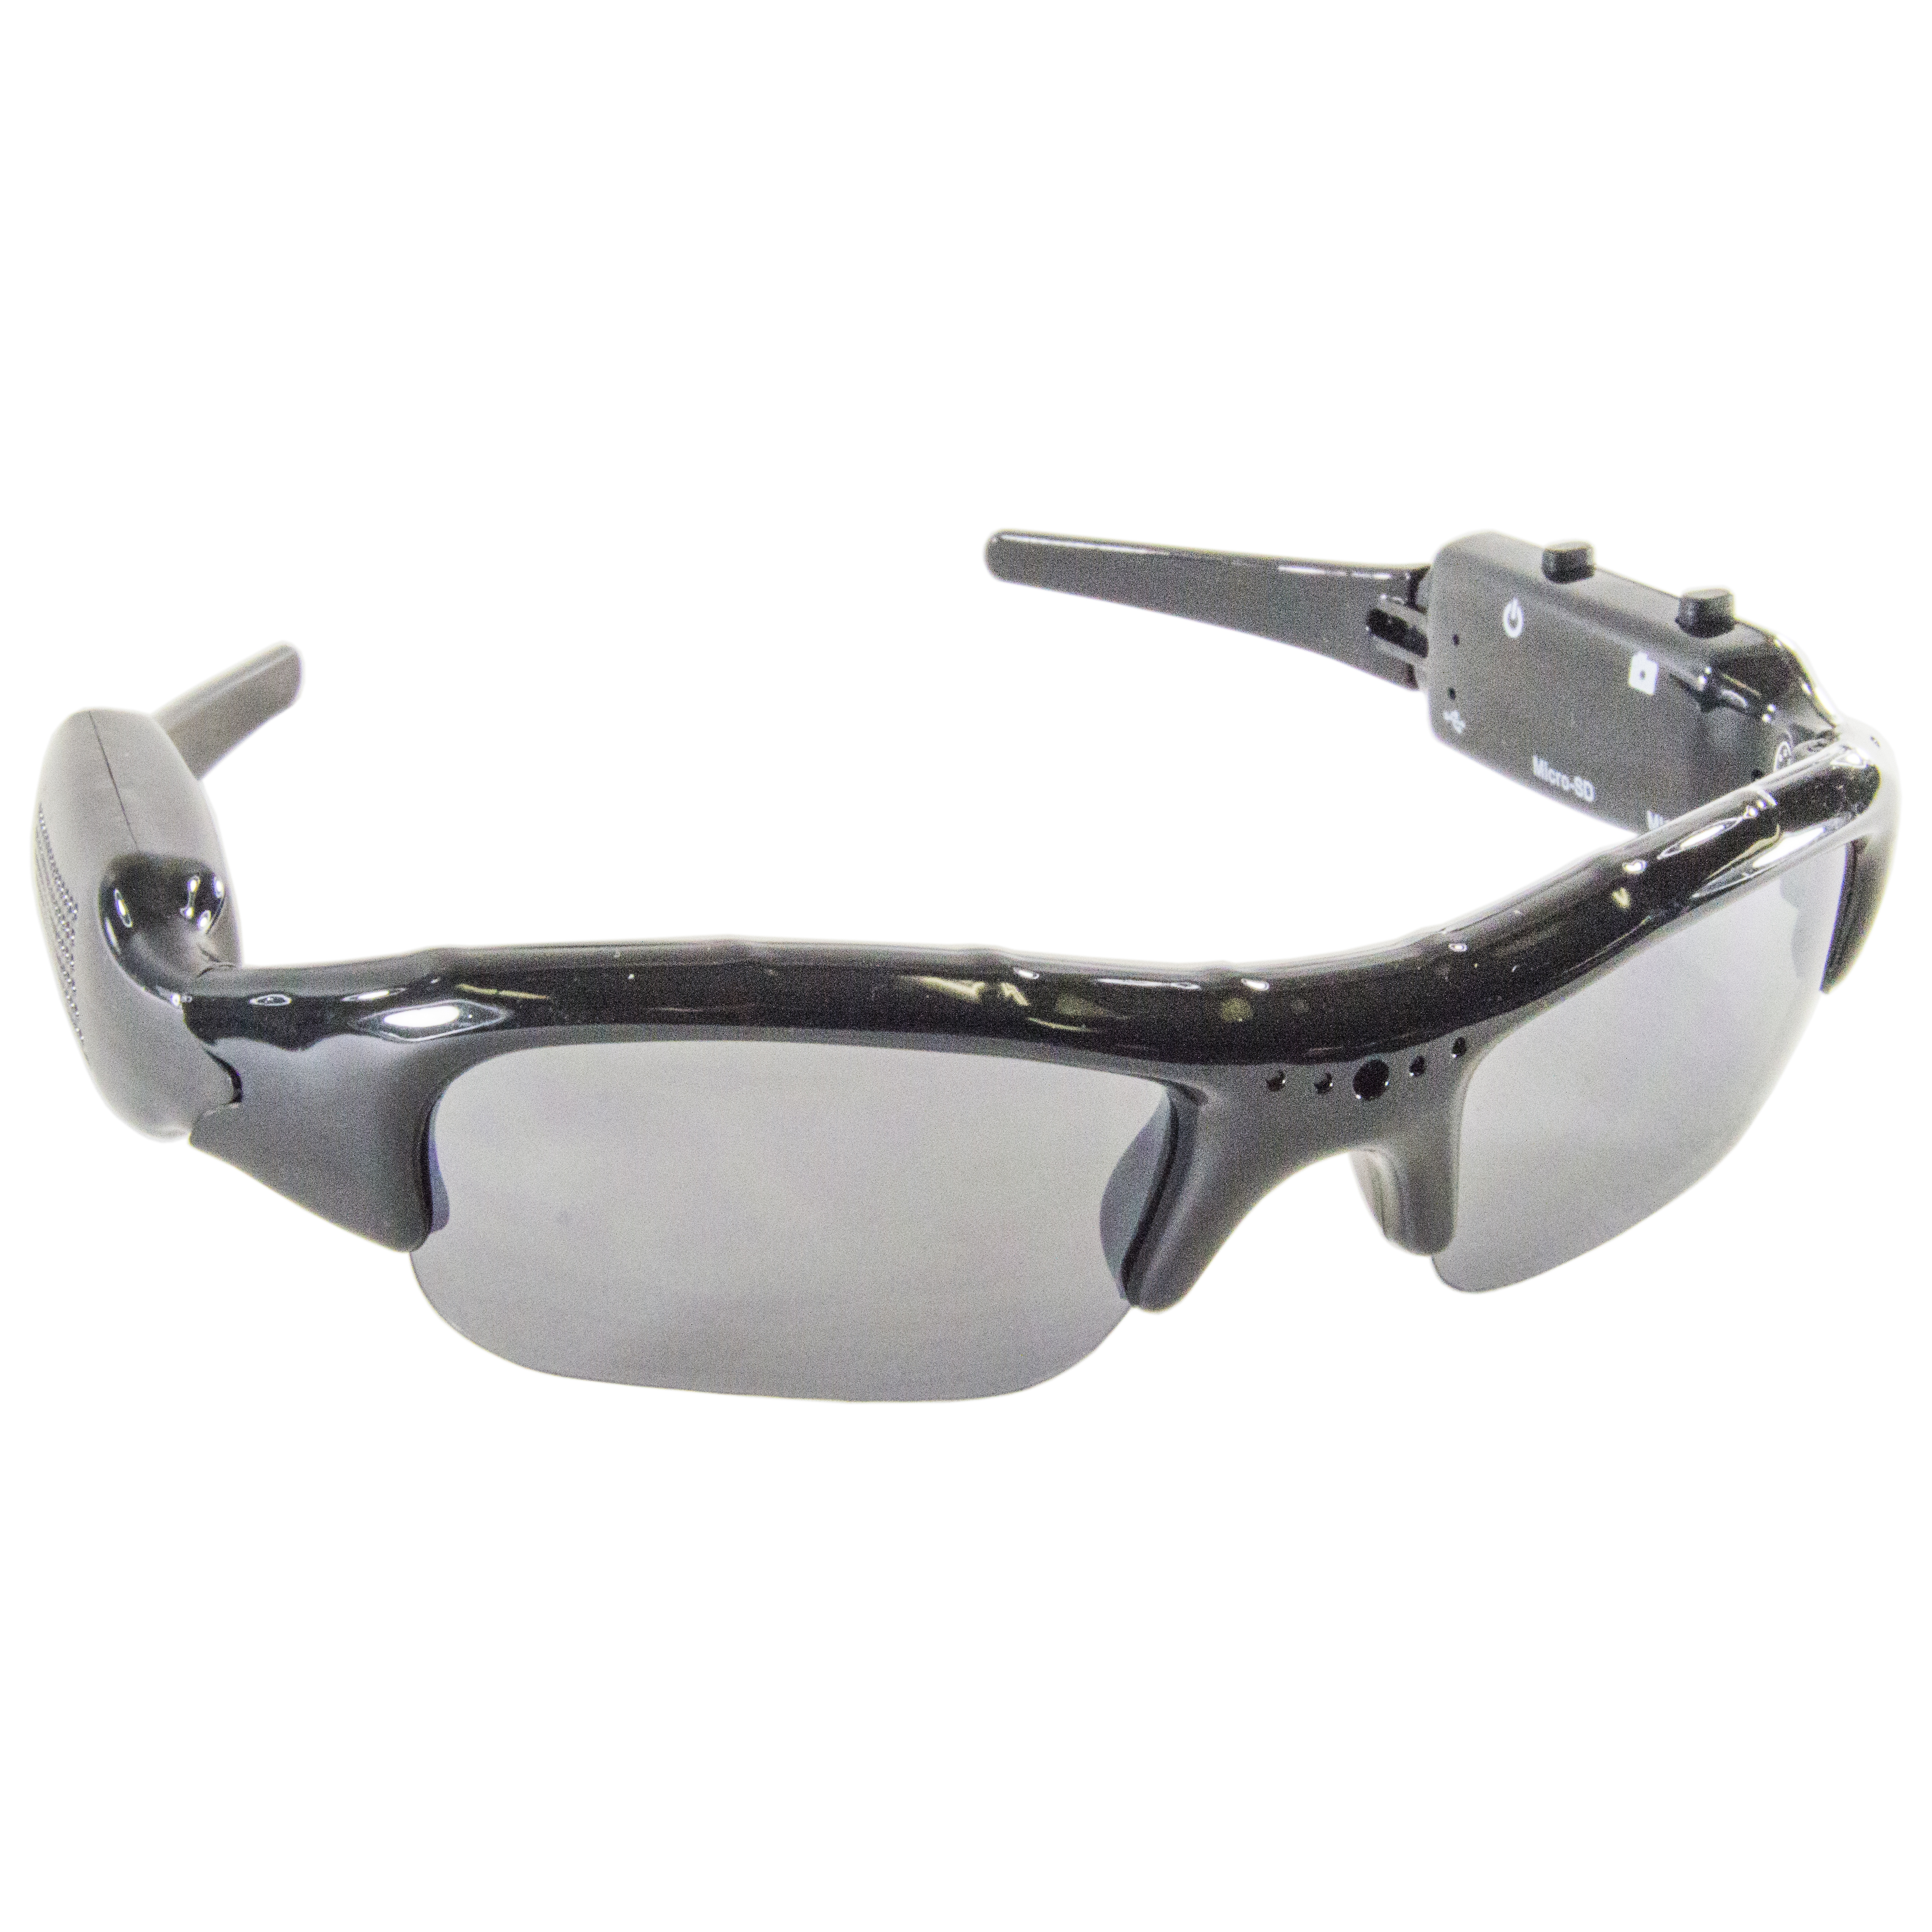 Video and Audio Recording Spy Sunglasses (REQUIRES MicroSD CARD 2GB OR LESS)